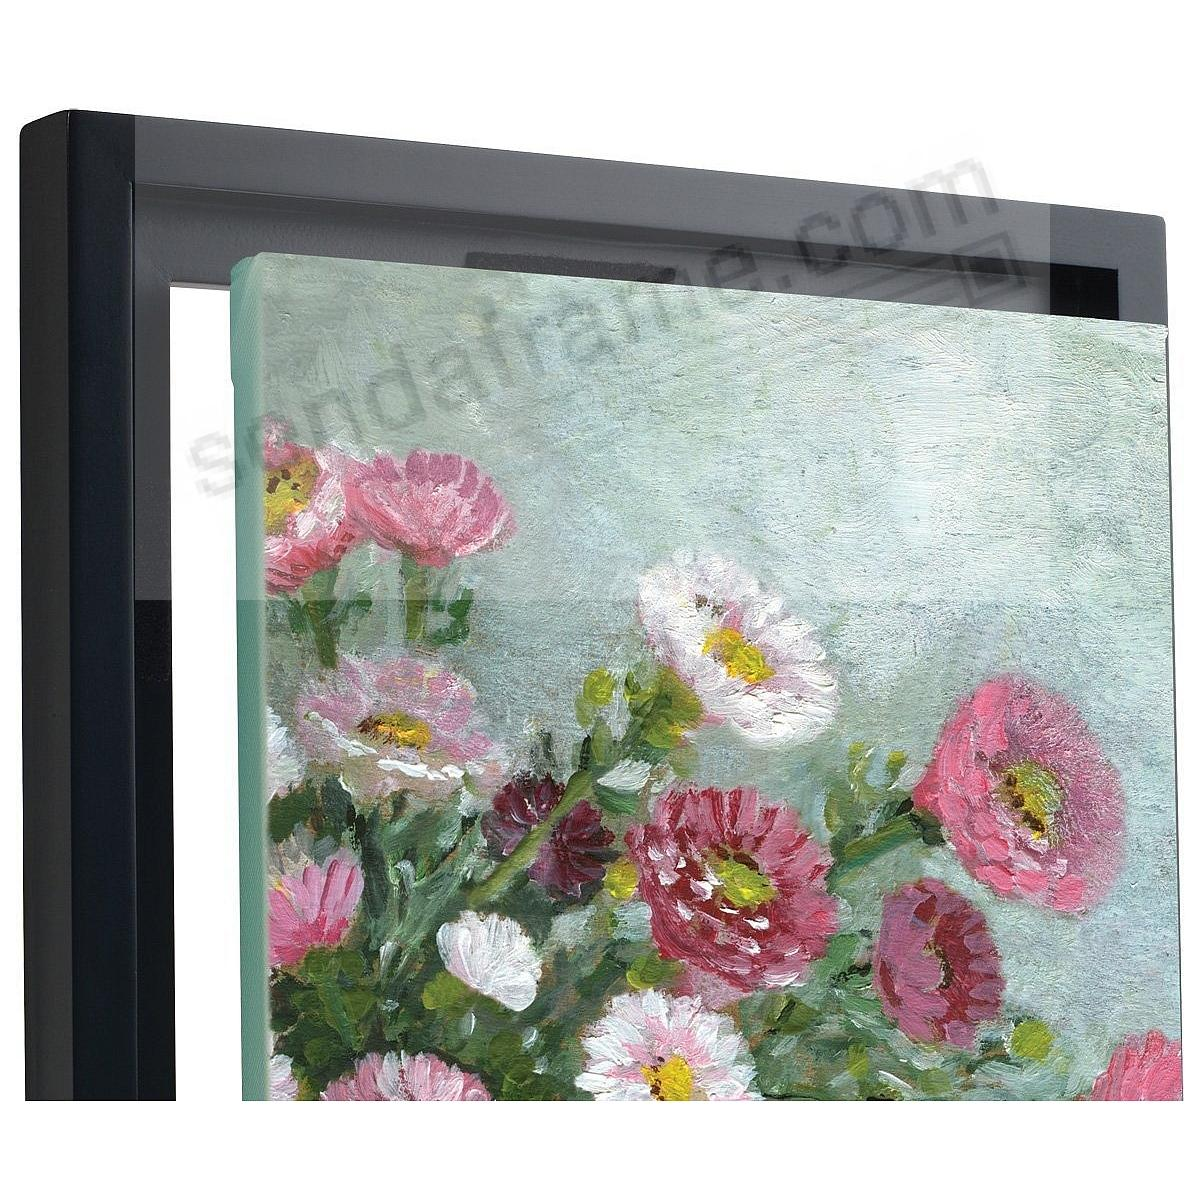 CANVAS DEPTH FLOAT FRAME 12x12 Black by MCS - Picture Frames, Photo ...